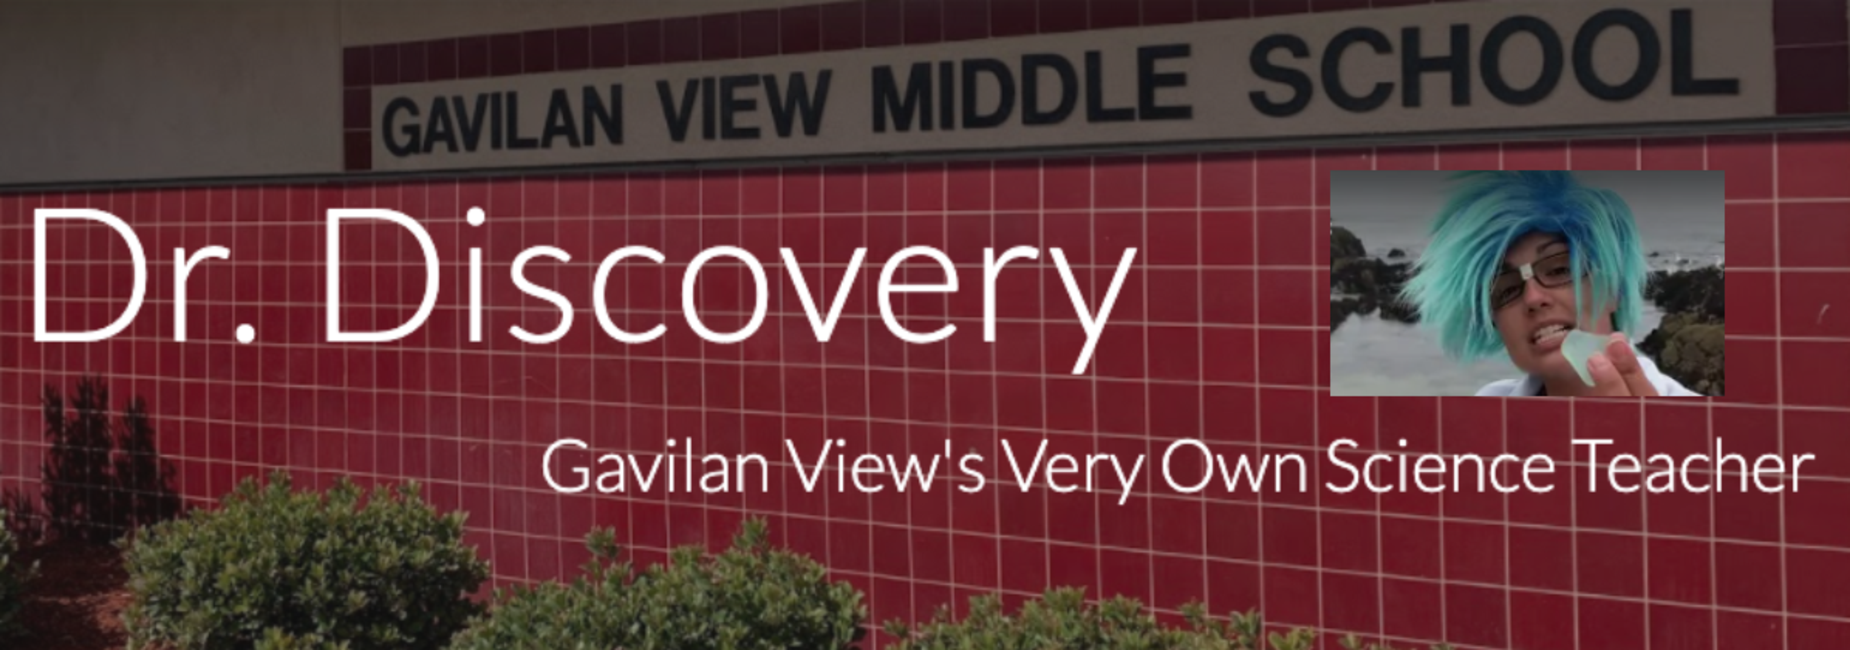 Dr. Discovery Website